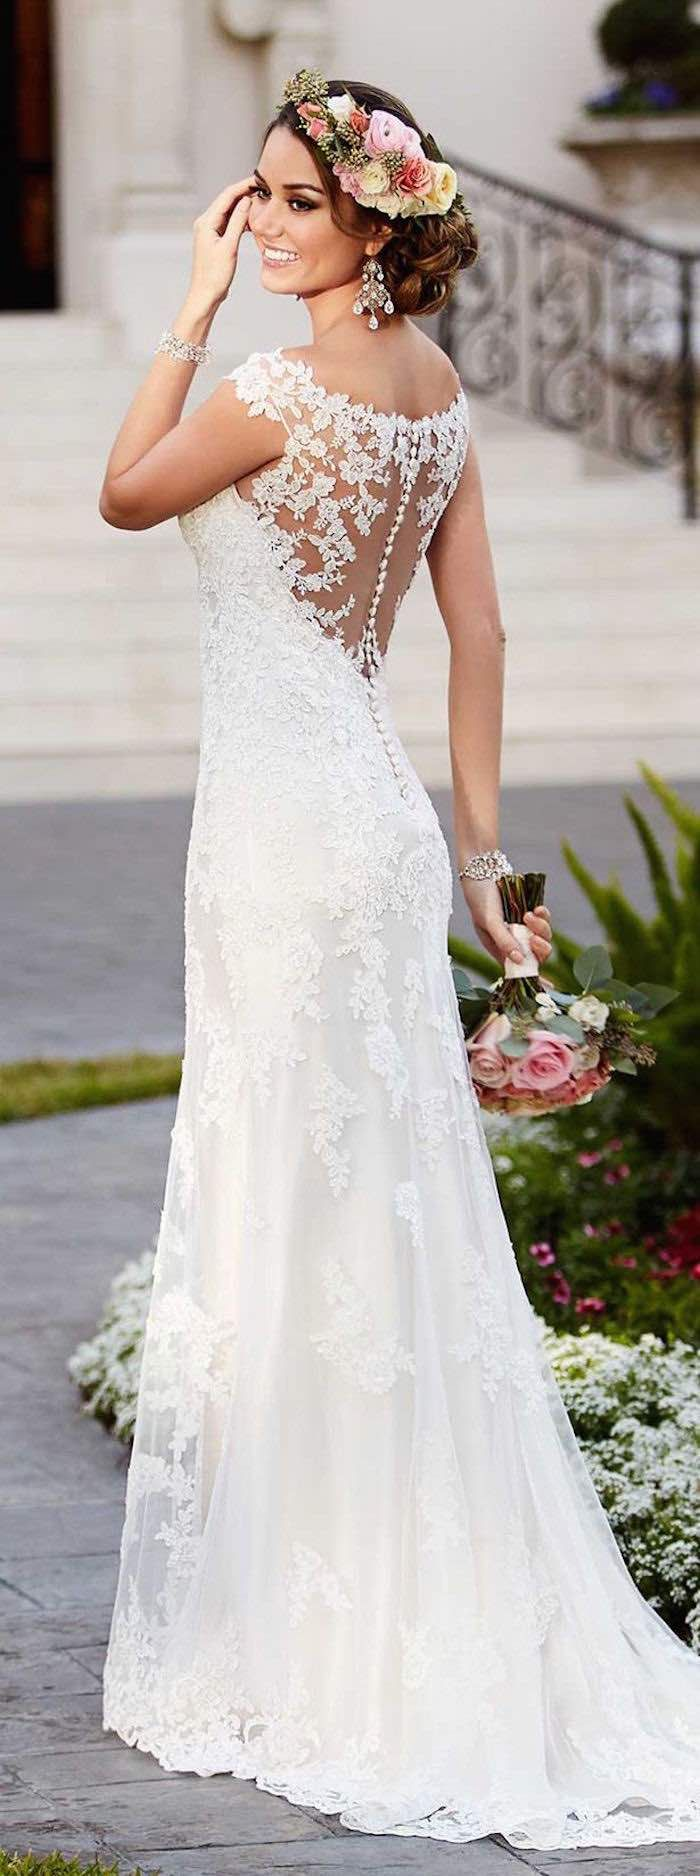 Gorgeous Stella York lace wedding dress looks amazing for this summer floral crown.